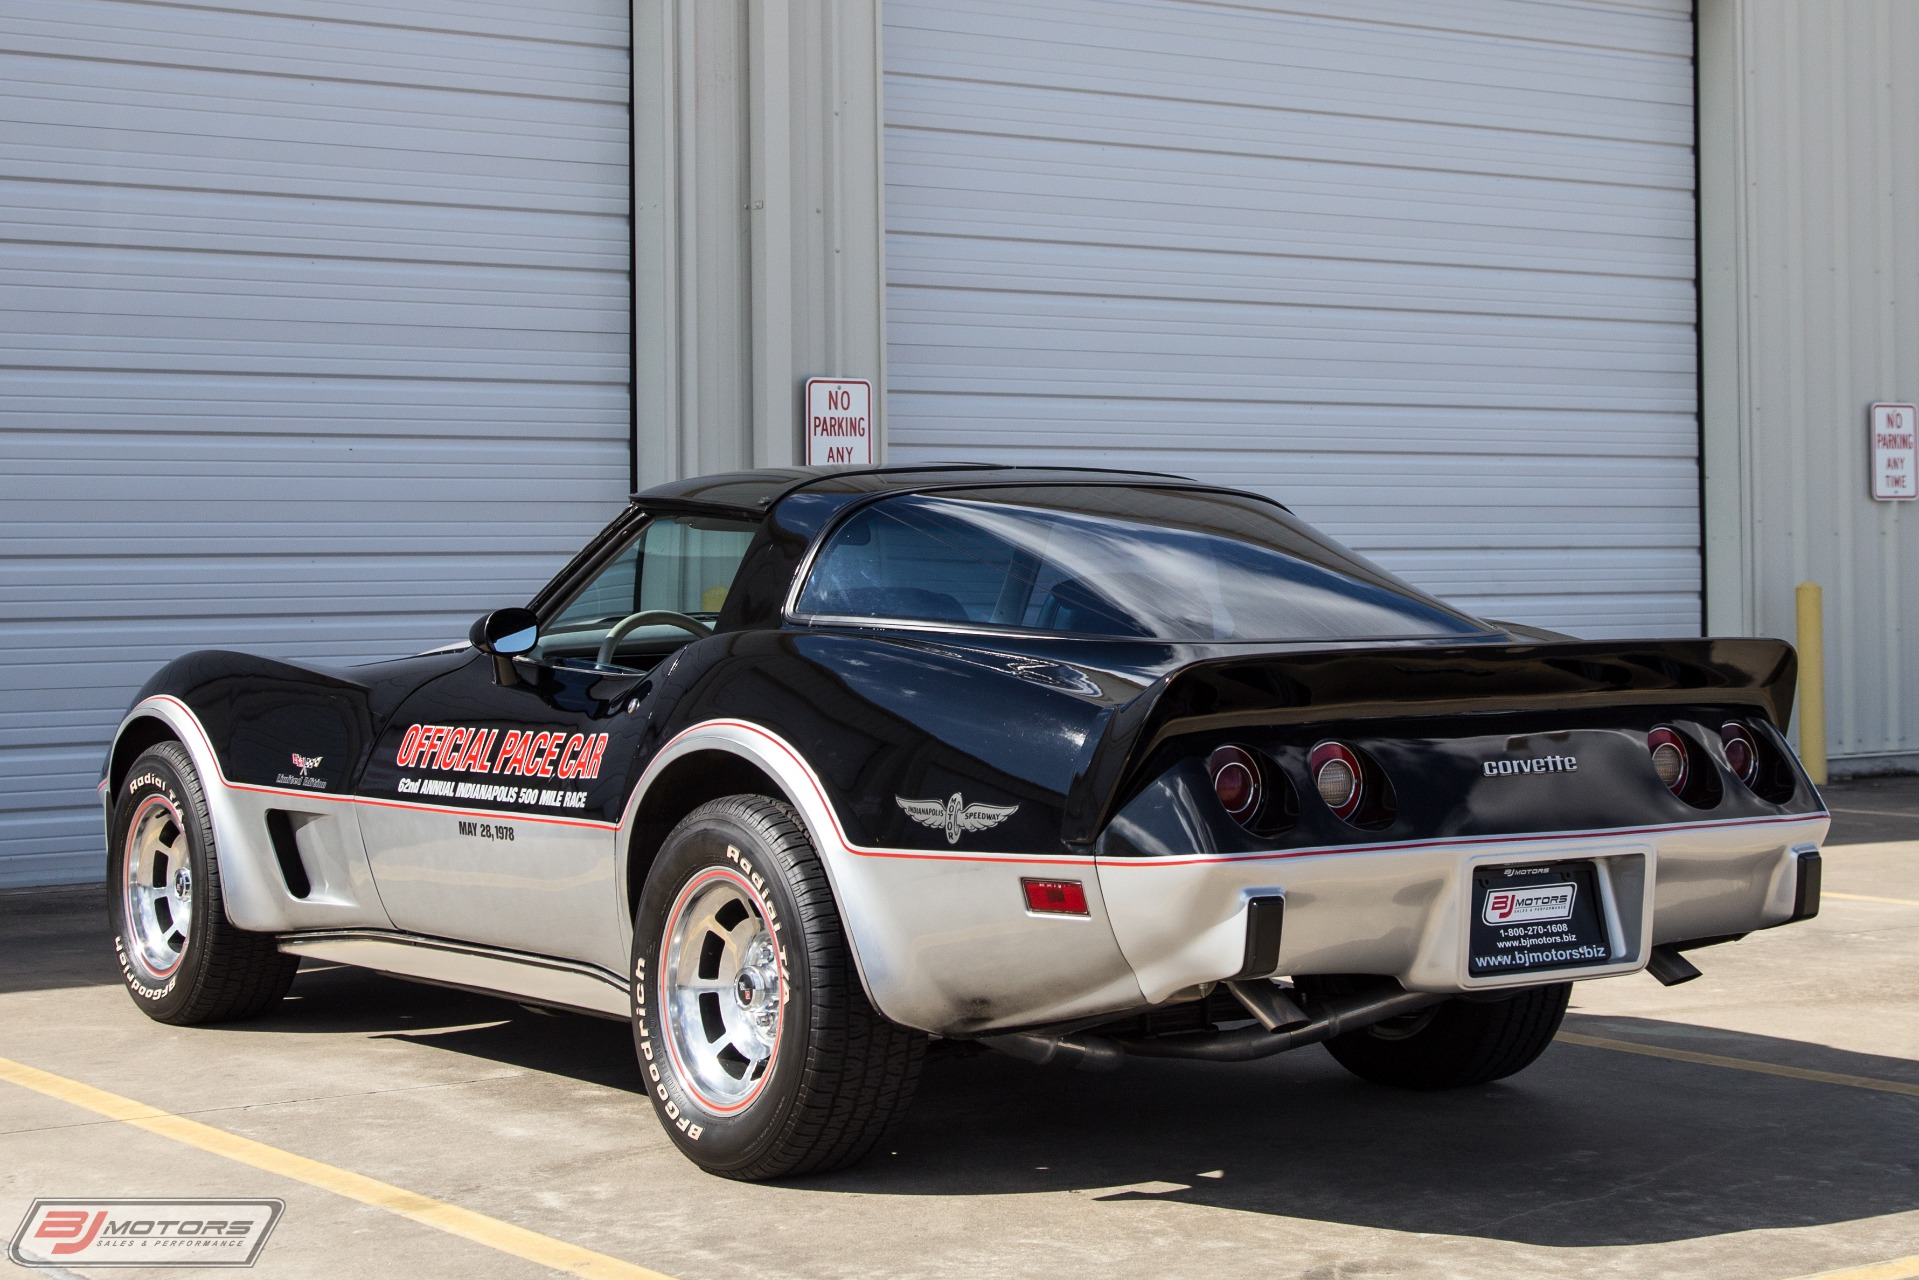 Used-1978-Chevrolet-Corvette-Indy-Pace-Car